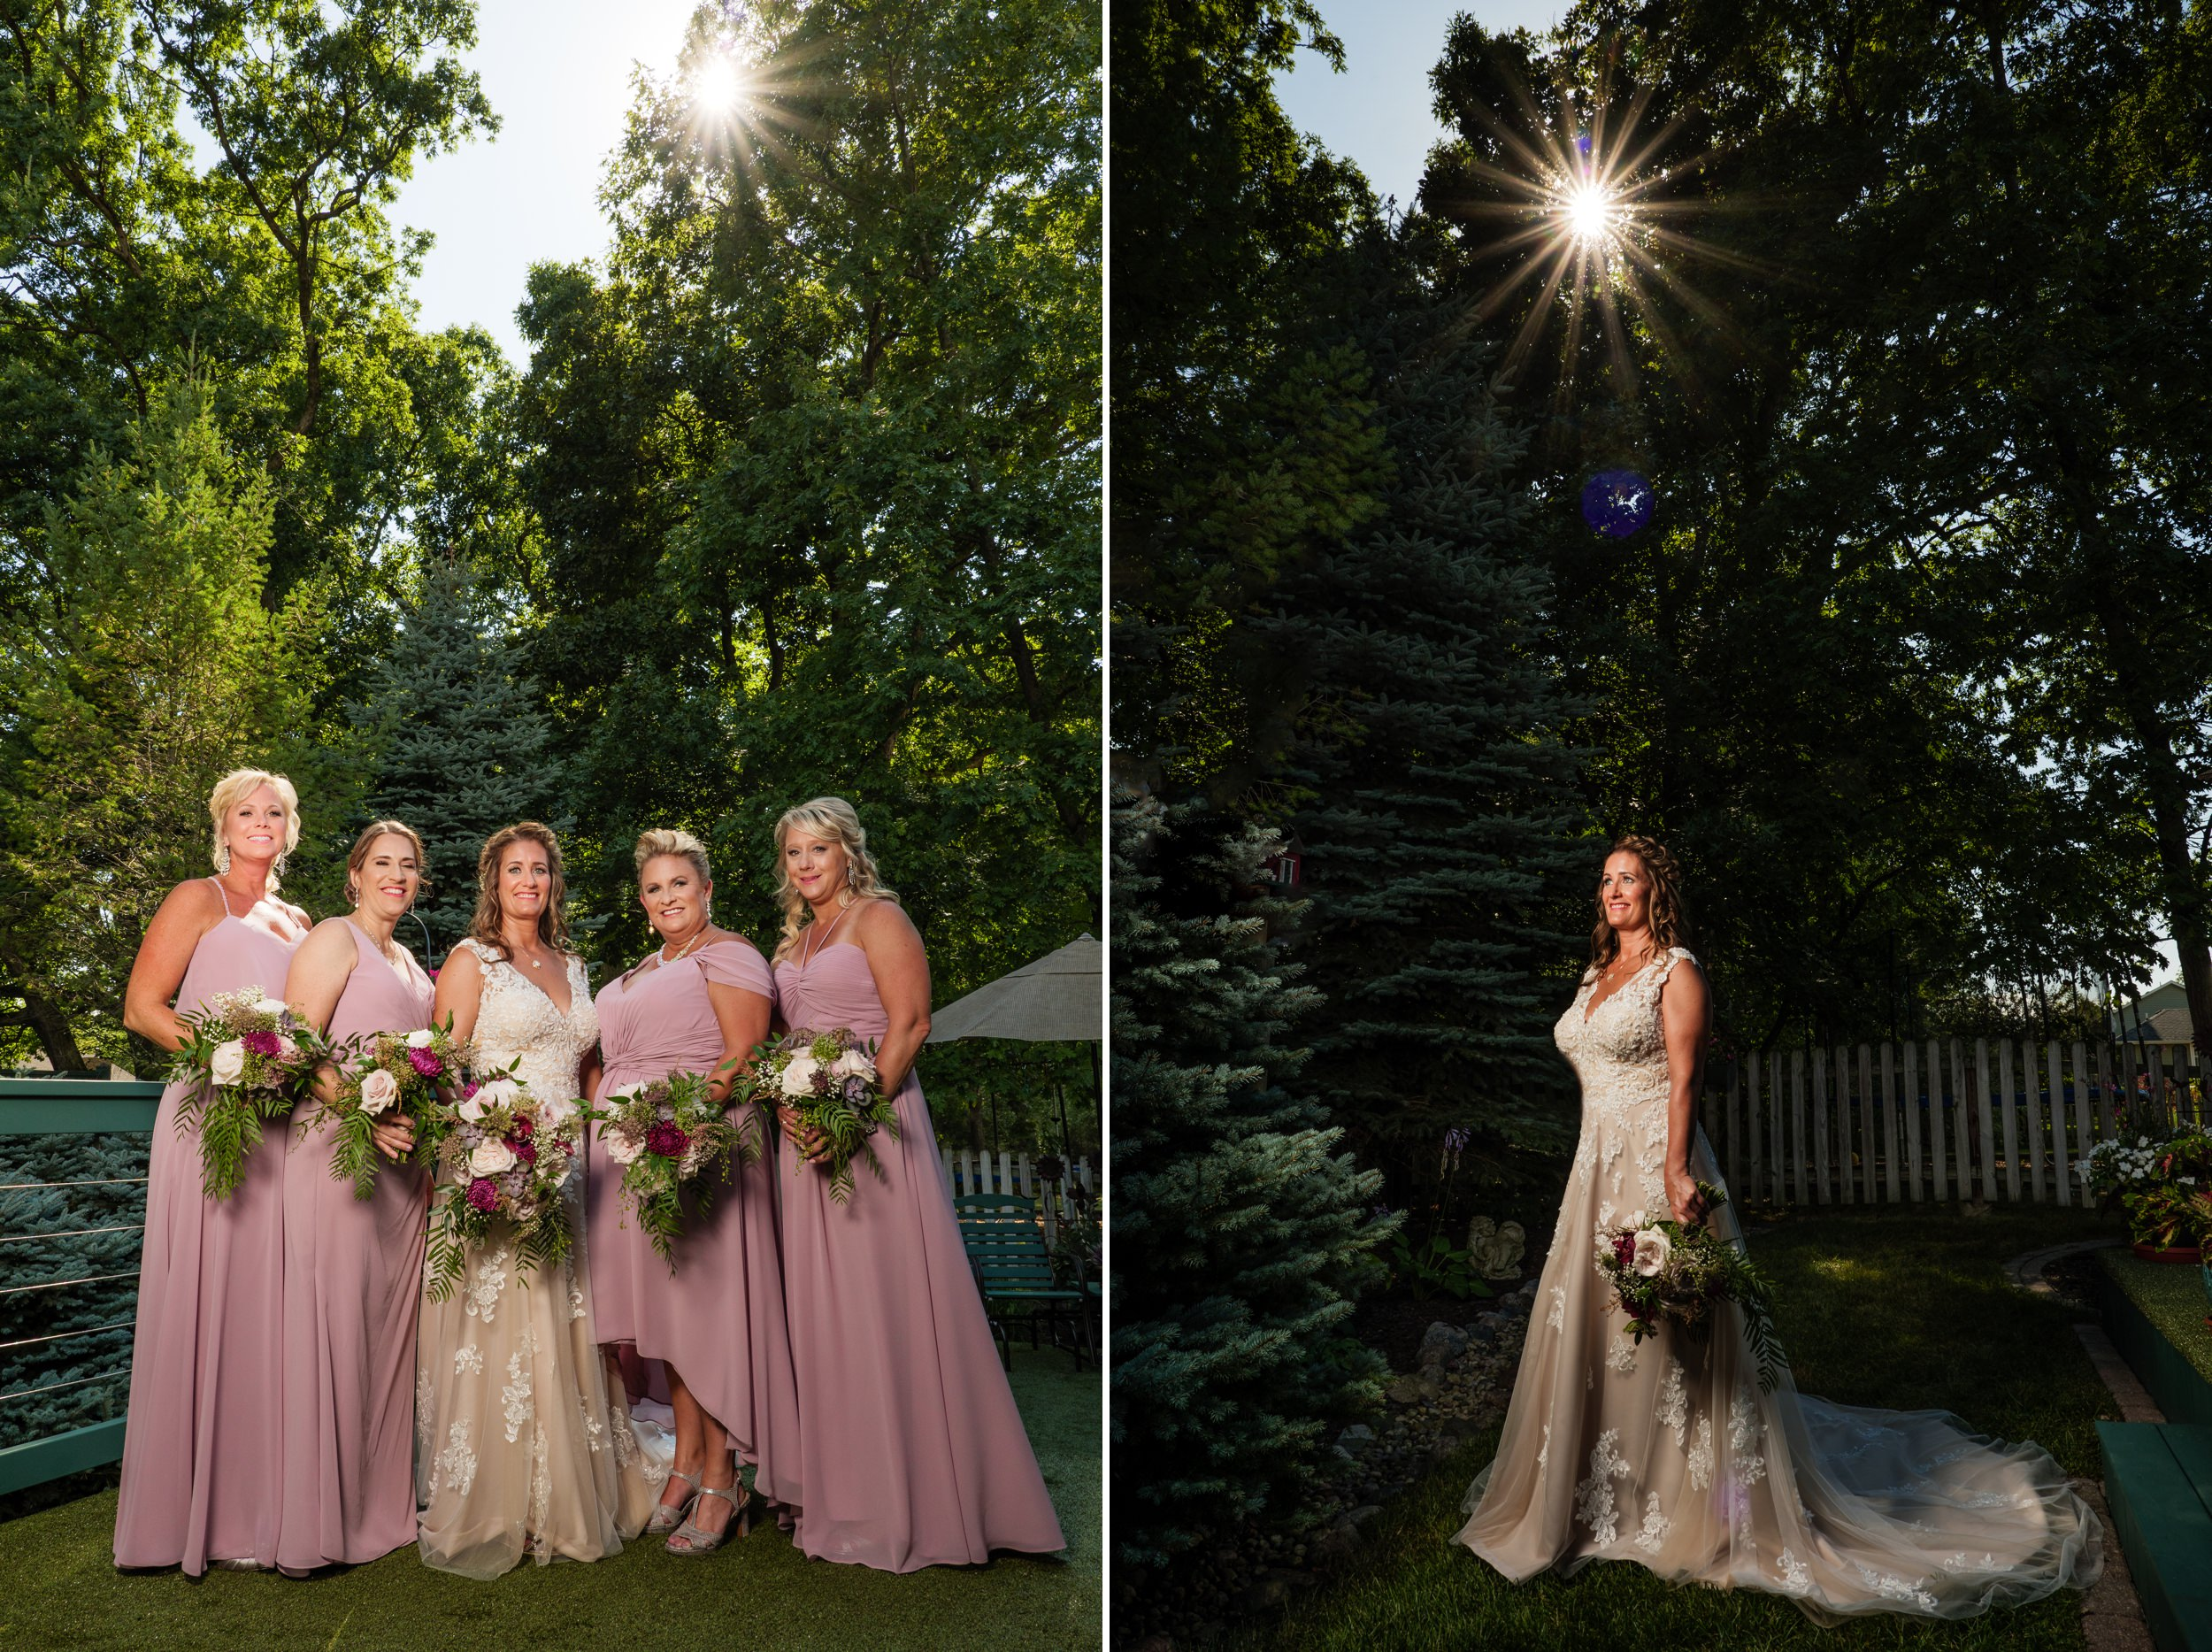 Bride and her bridesmaids on wedding day.